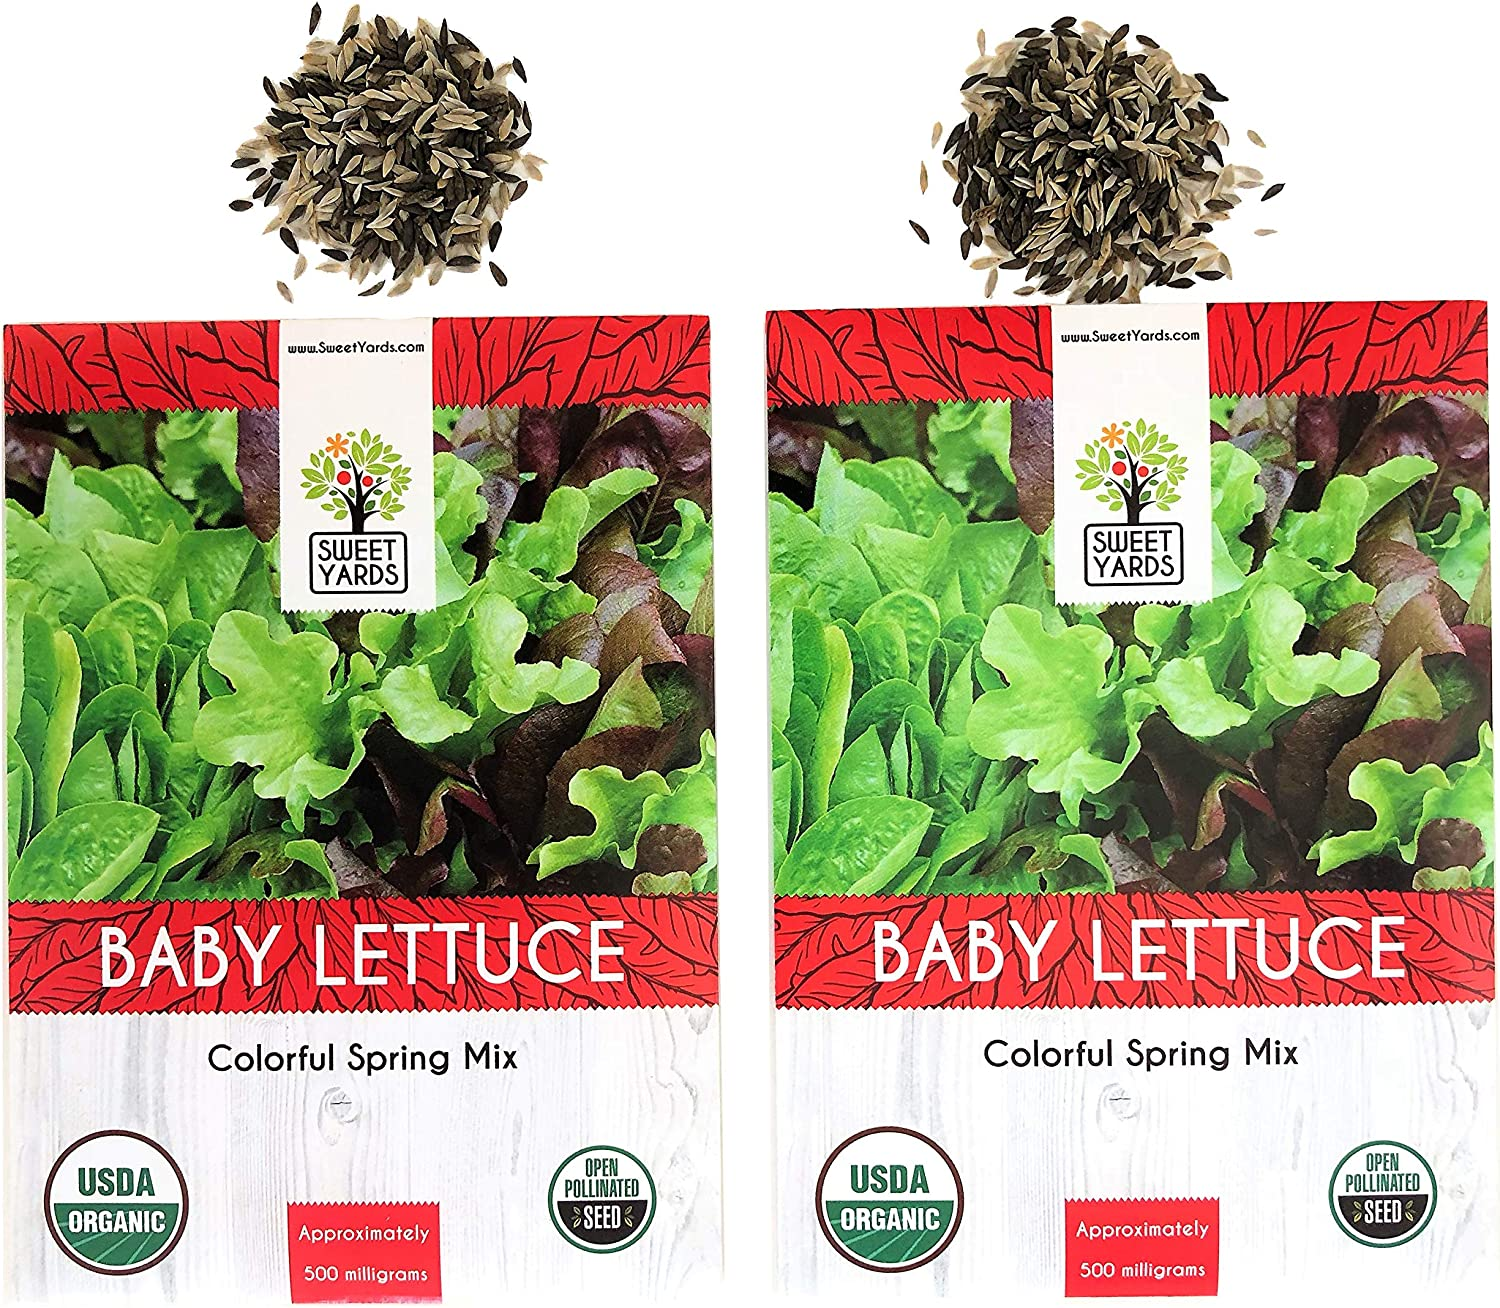 Colorful Spring Mix - 2 Seed Packets! Baby Leaf Lettuce Seeds Over 1000 Open Pollinated Non-GMO USDA Organic Seeds